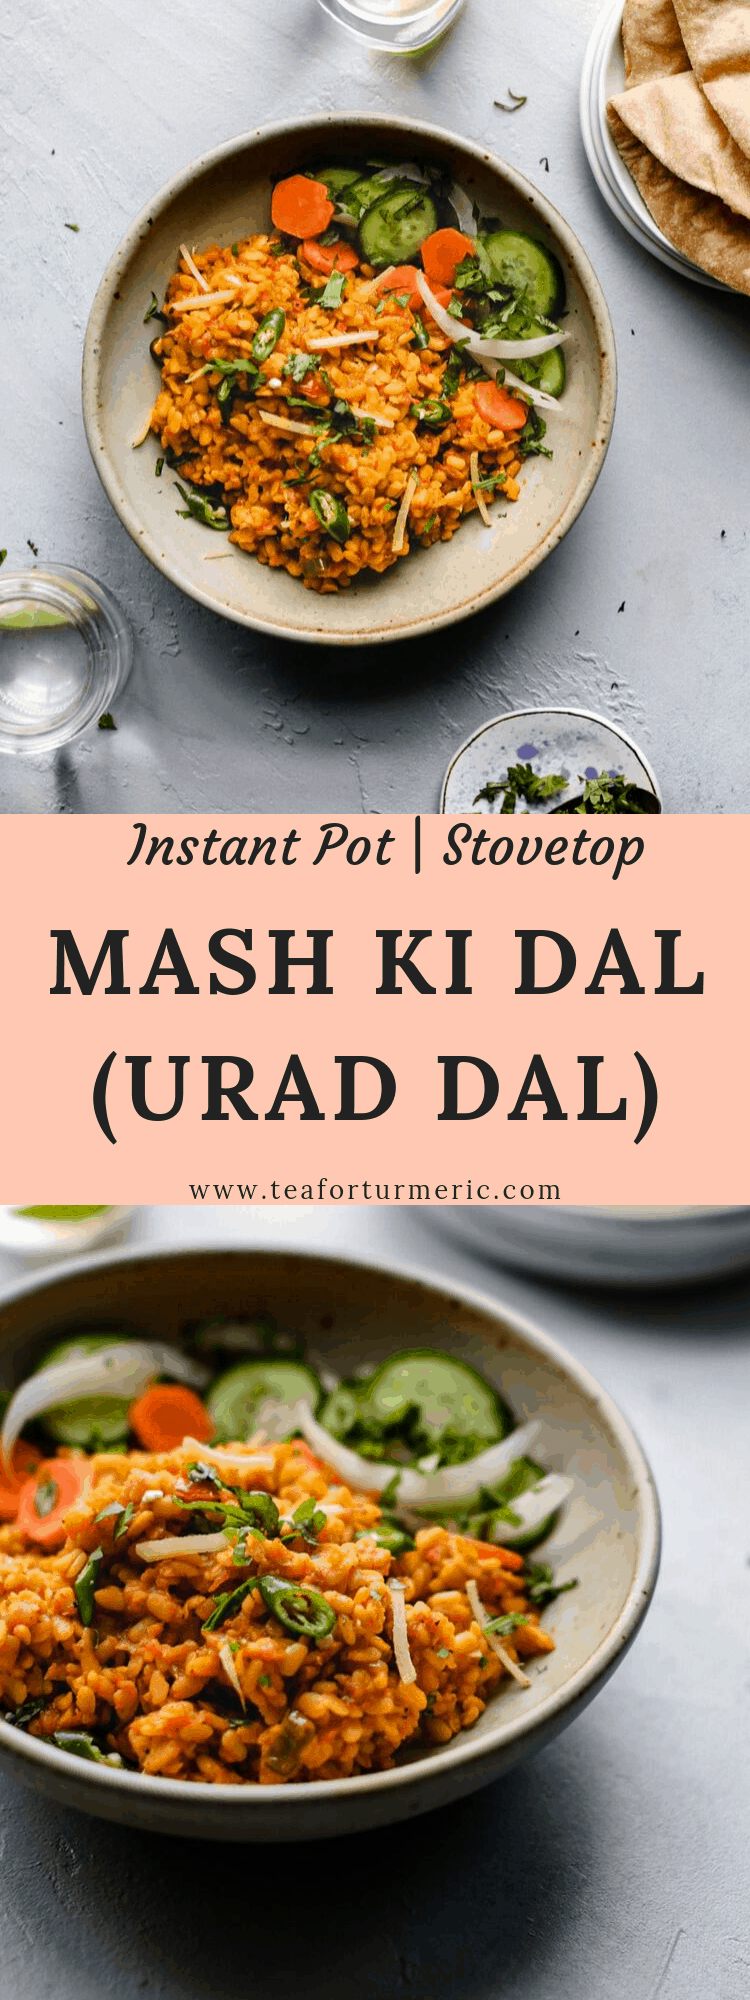 Maash ki Daal, or sukhi (dry) split urad dal - INSTANT POT and STOVETOP recipes included. This recipe makes Maash dal in the traditional Pakistani and Punjabi way - dry, as in firm, but cooked through - and adorned with delicate slivers of ginger and warming green chili peppers.